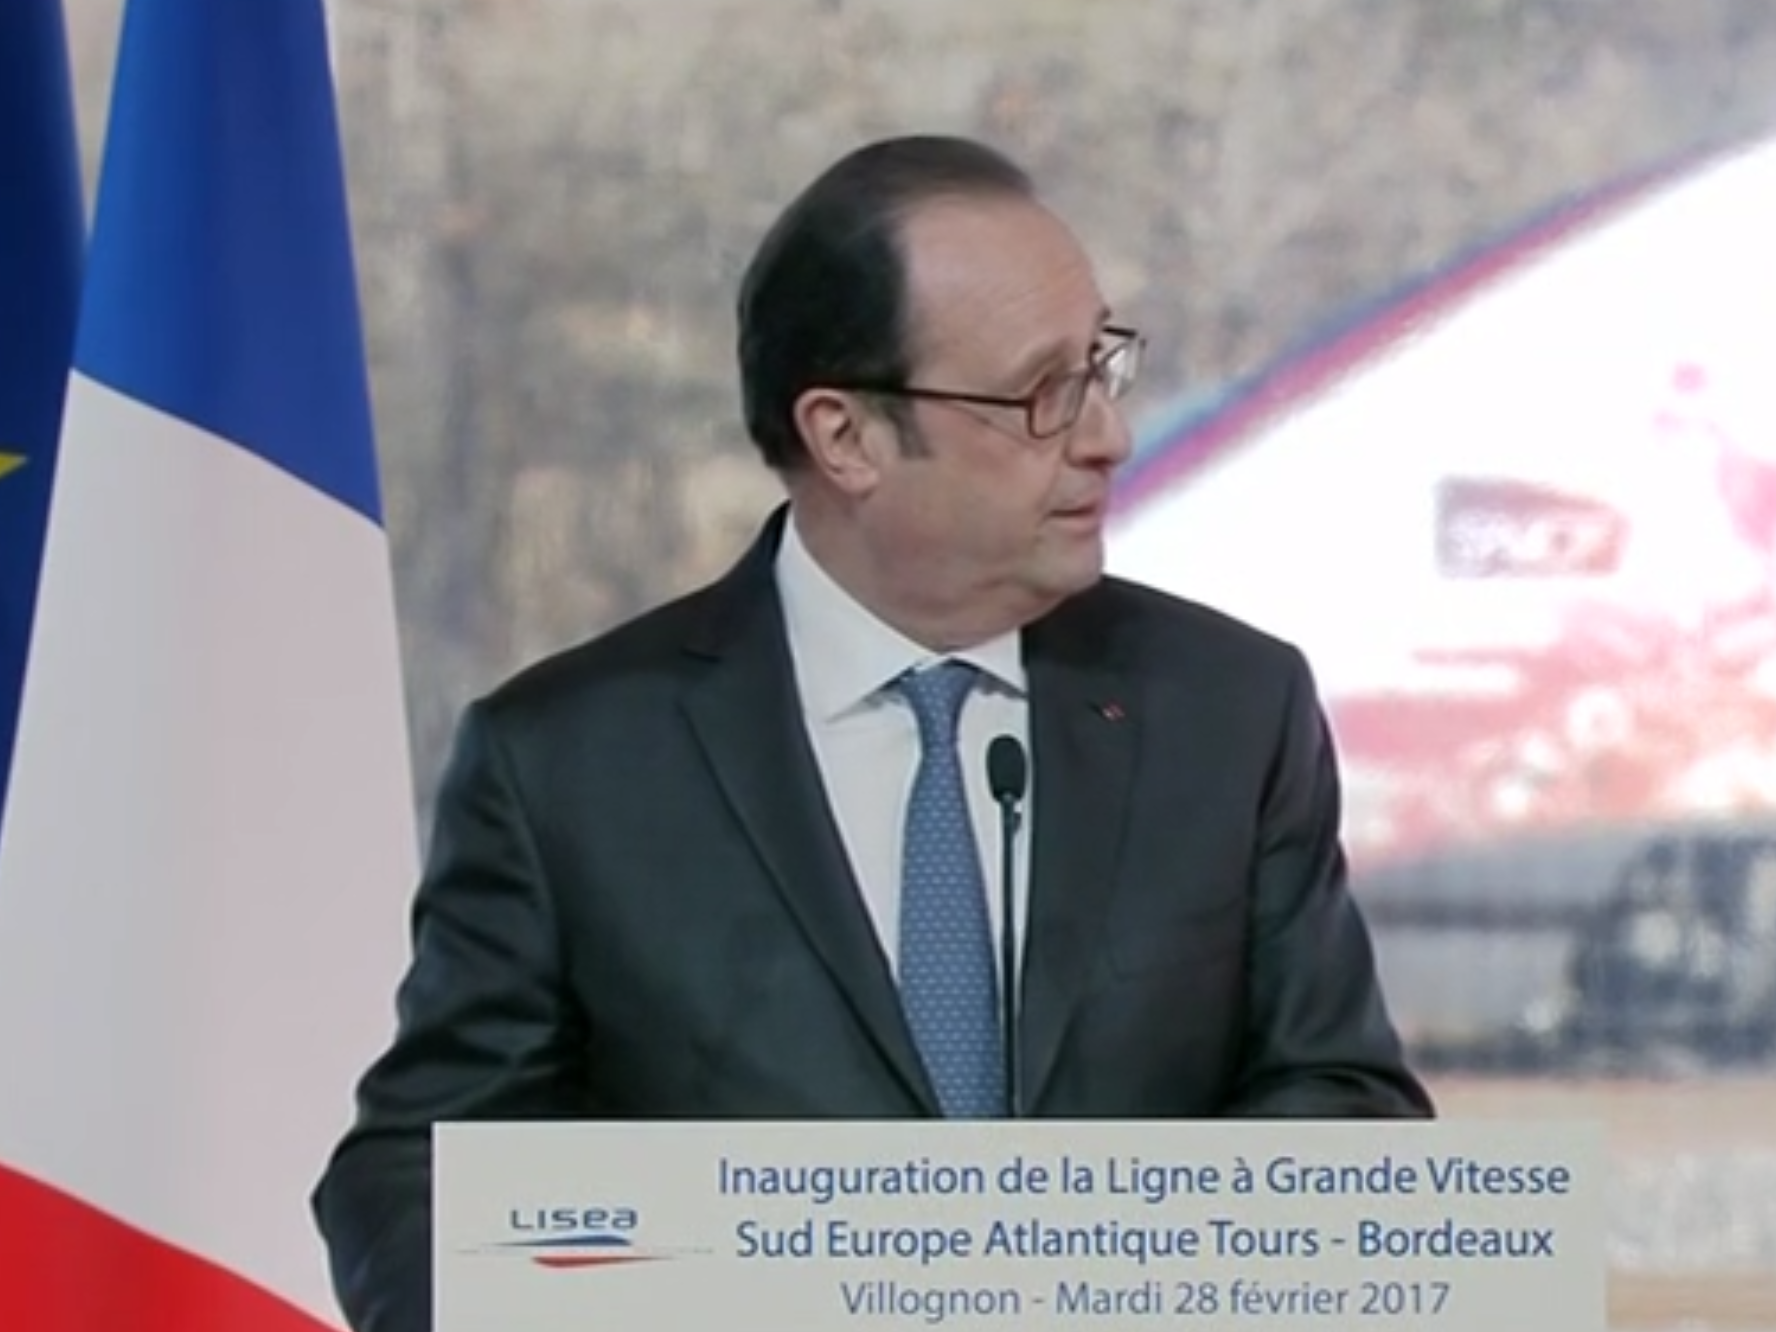 Gunfire at speech by French President Francois Hollande leaves one injured